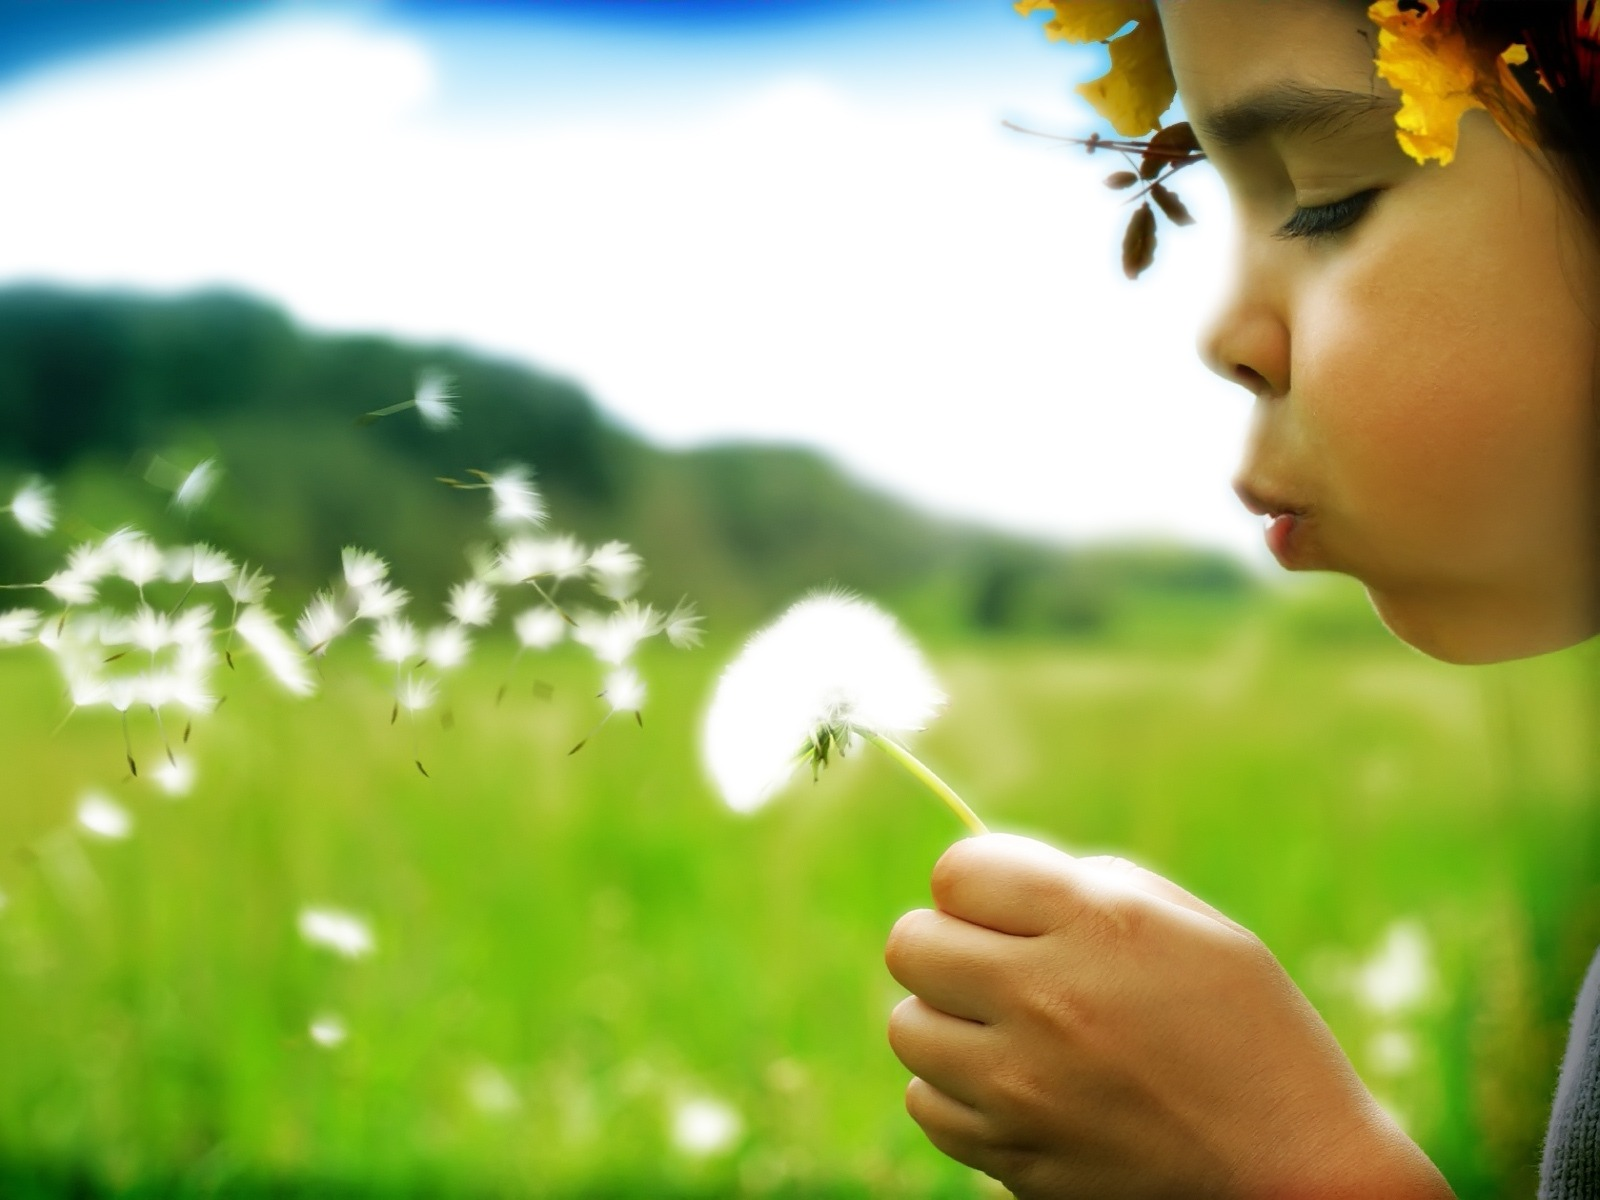 Nature Child Wallpaper Miscellaneous Other Wallpapers in jpg format